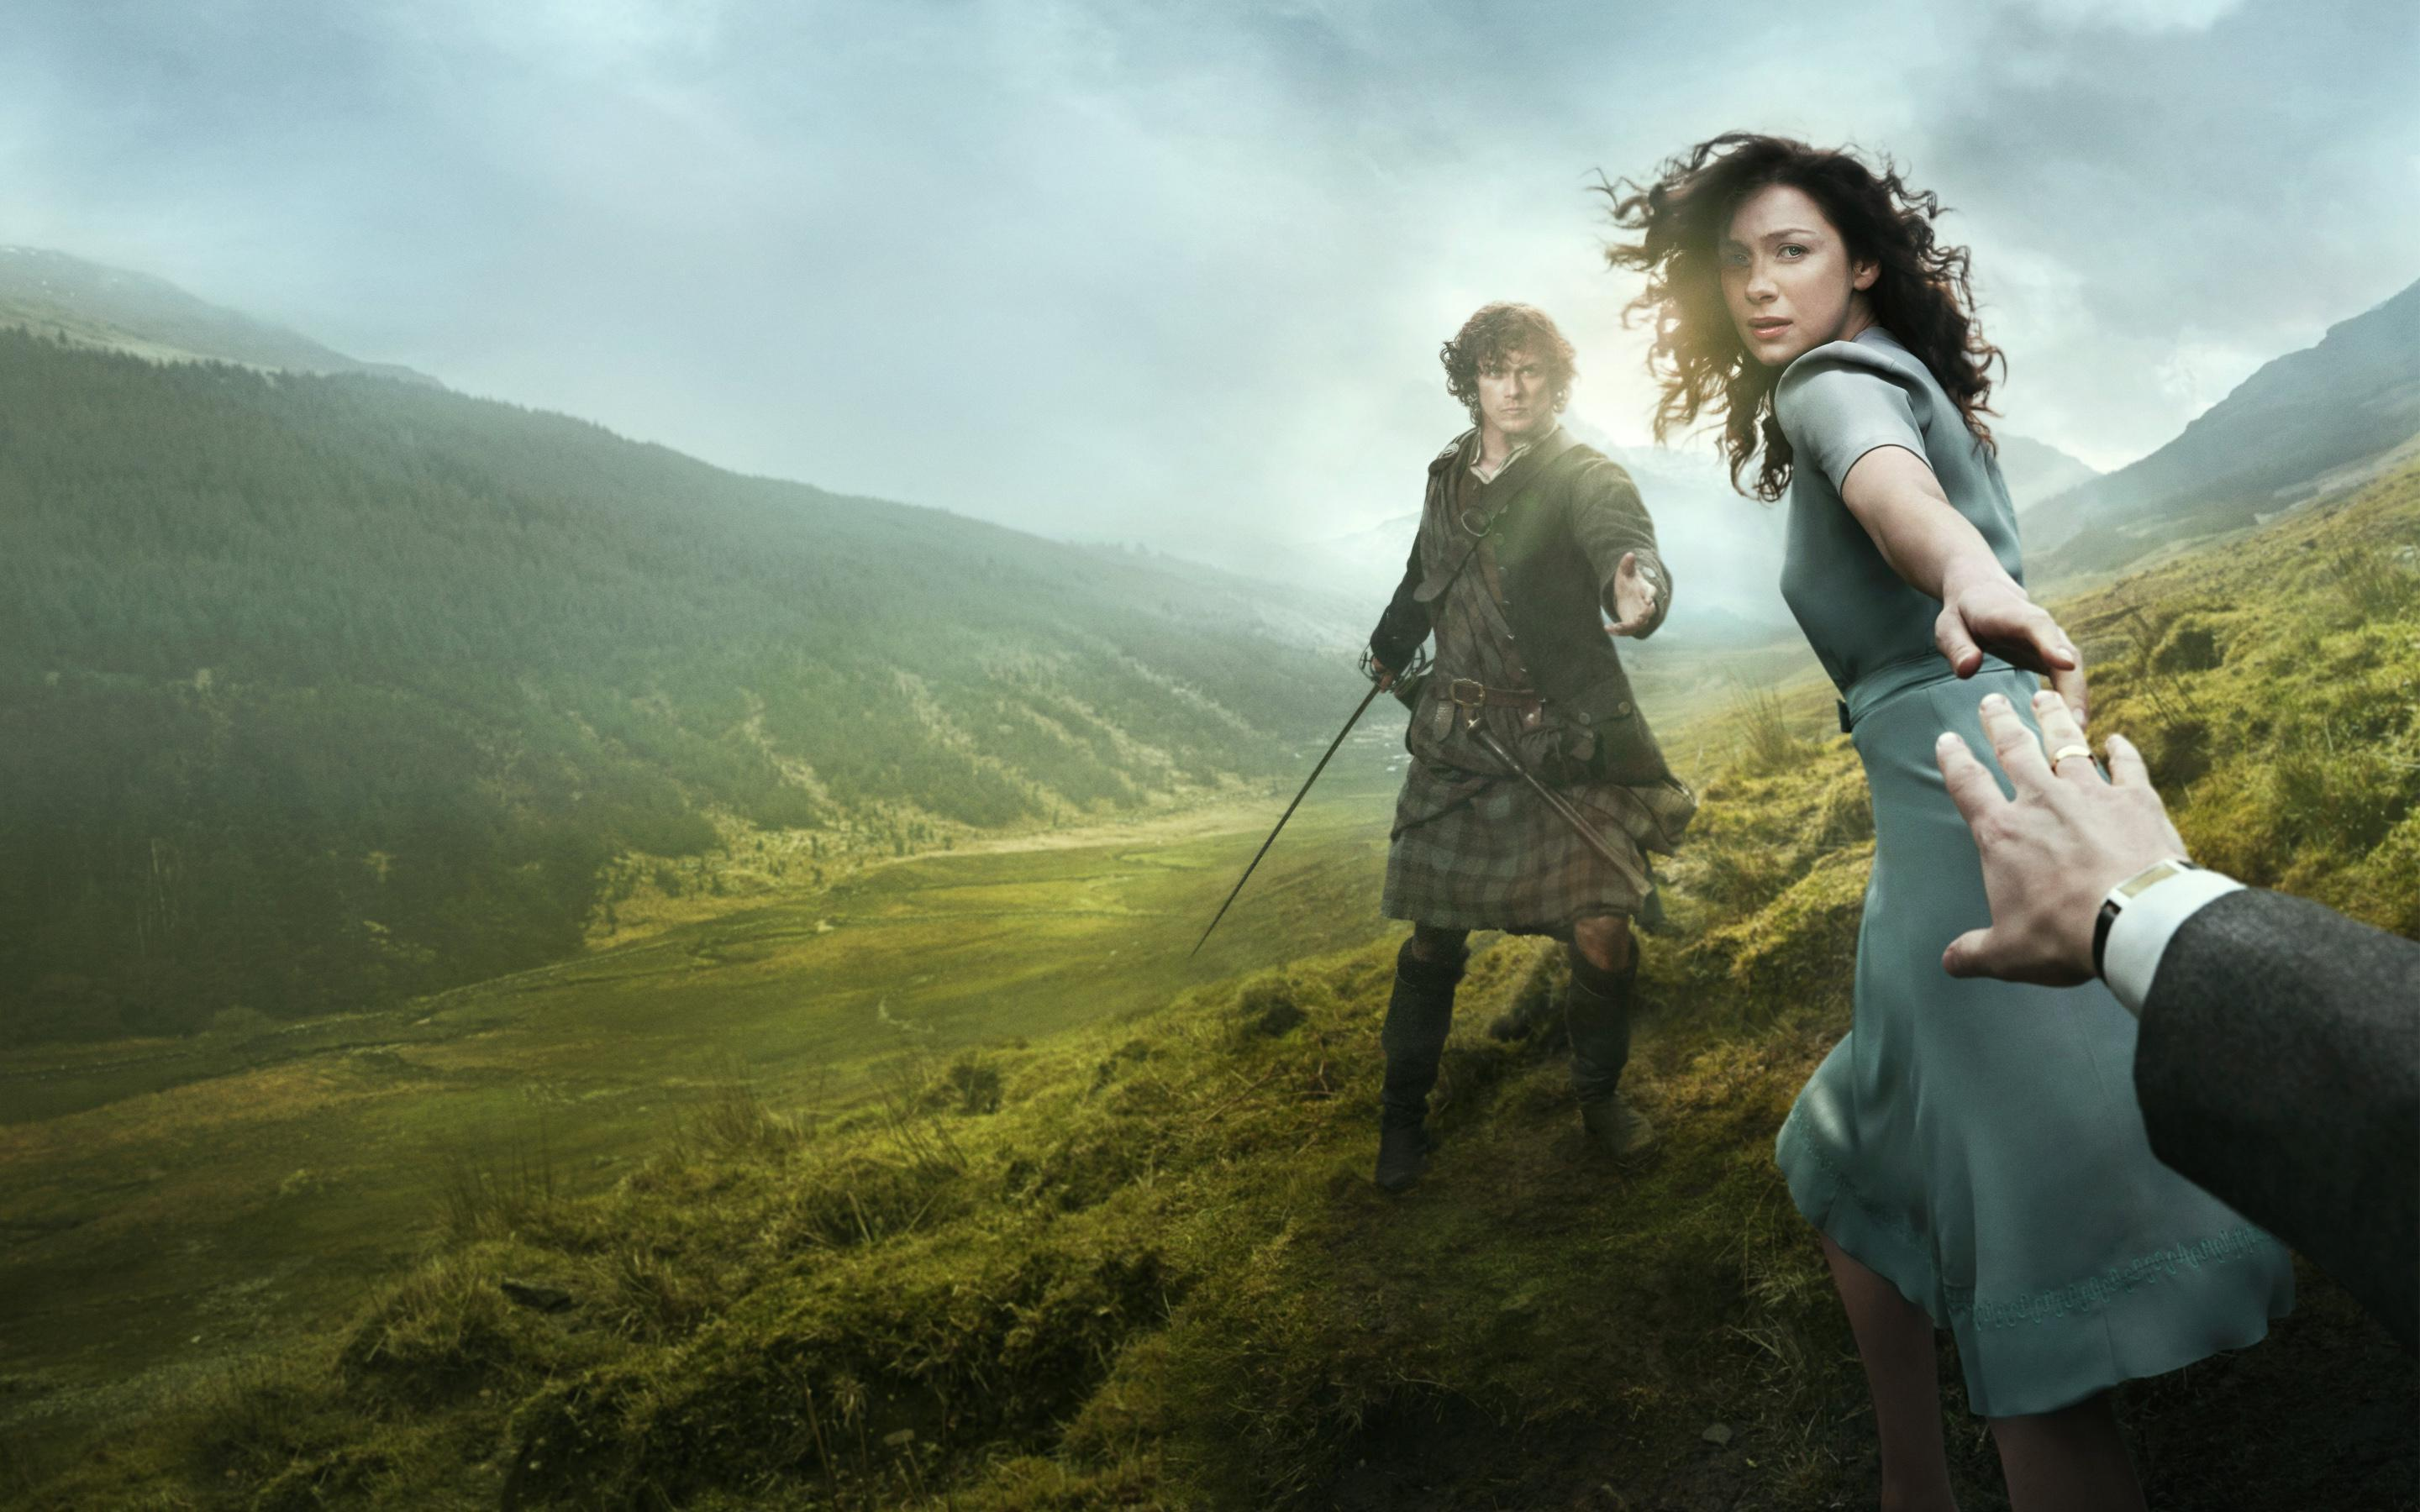 outlander, tvseries, scotland, highlands